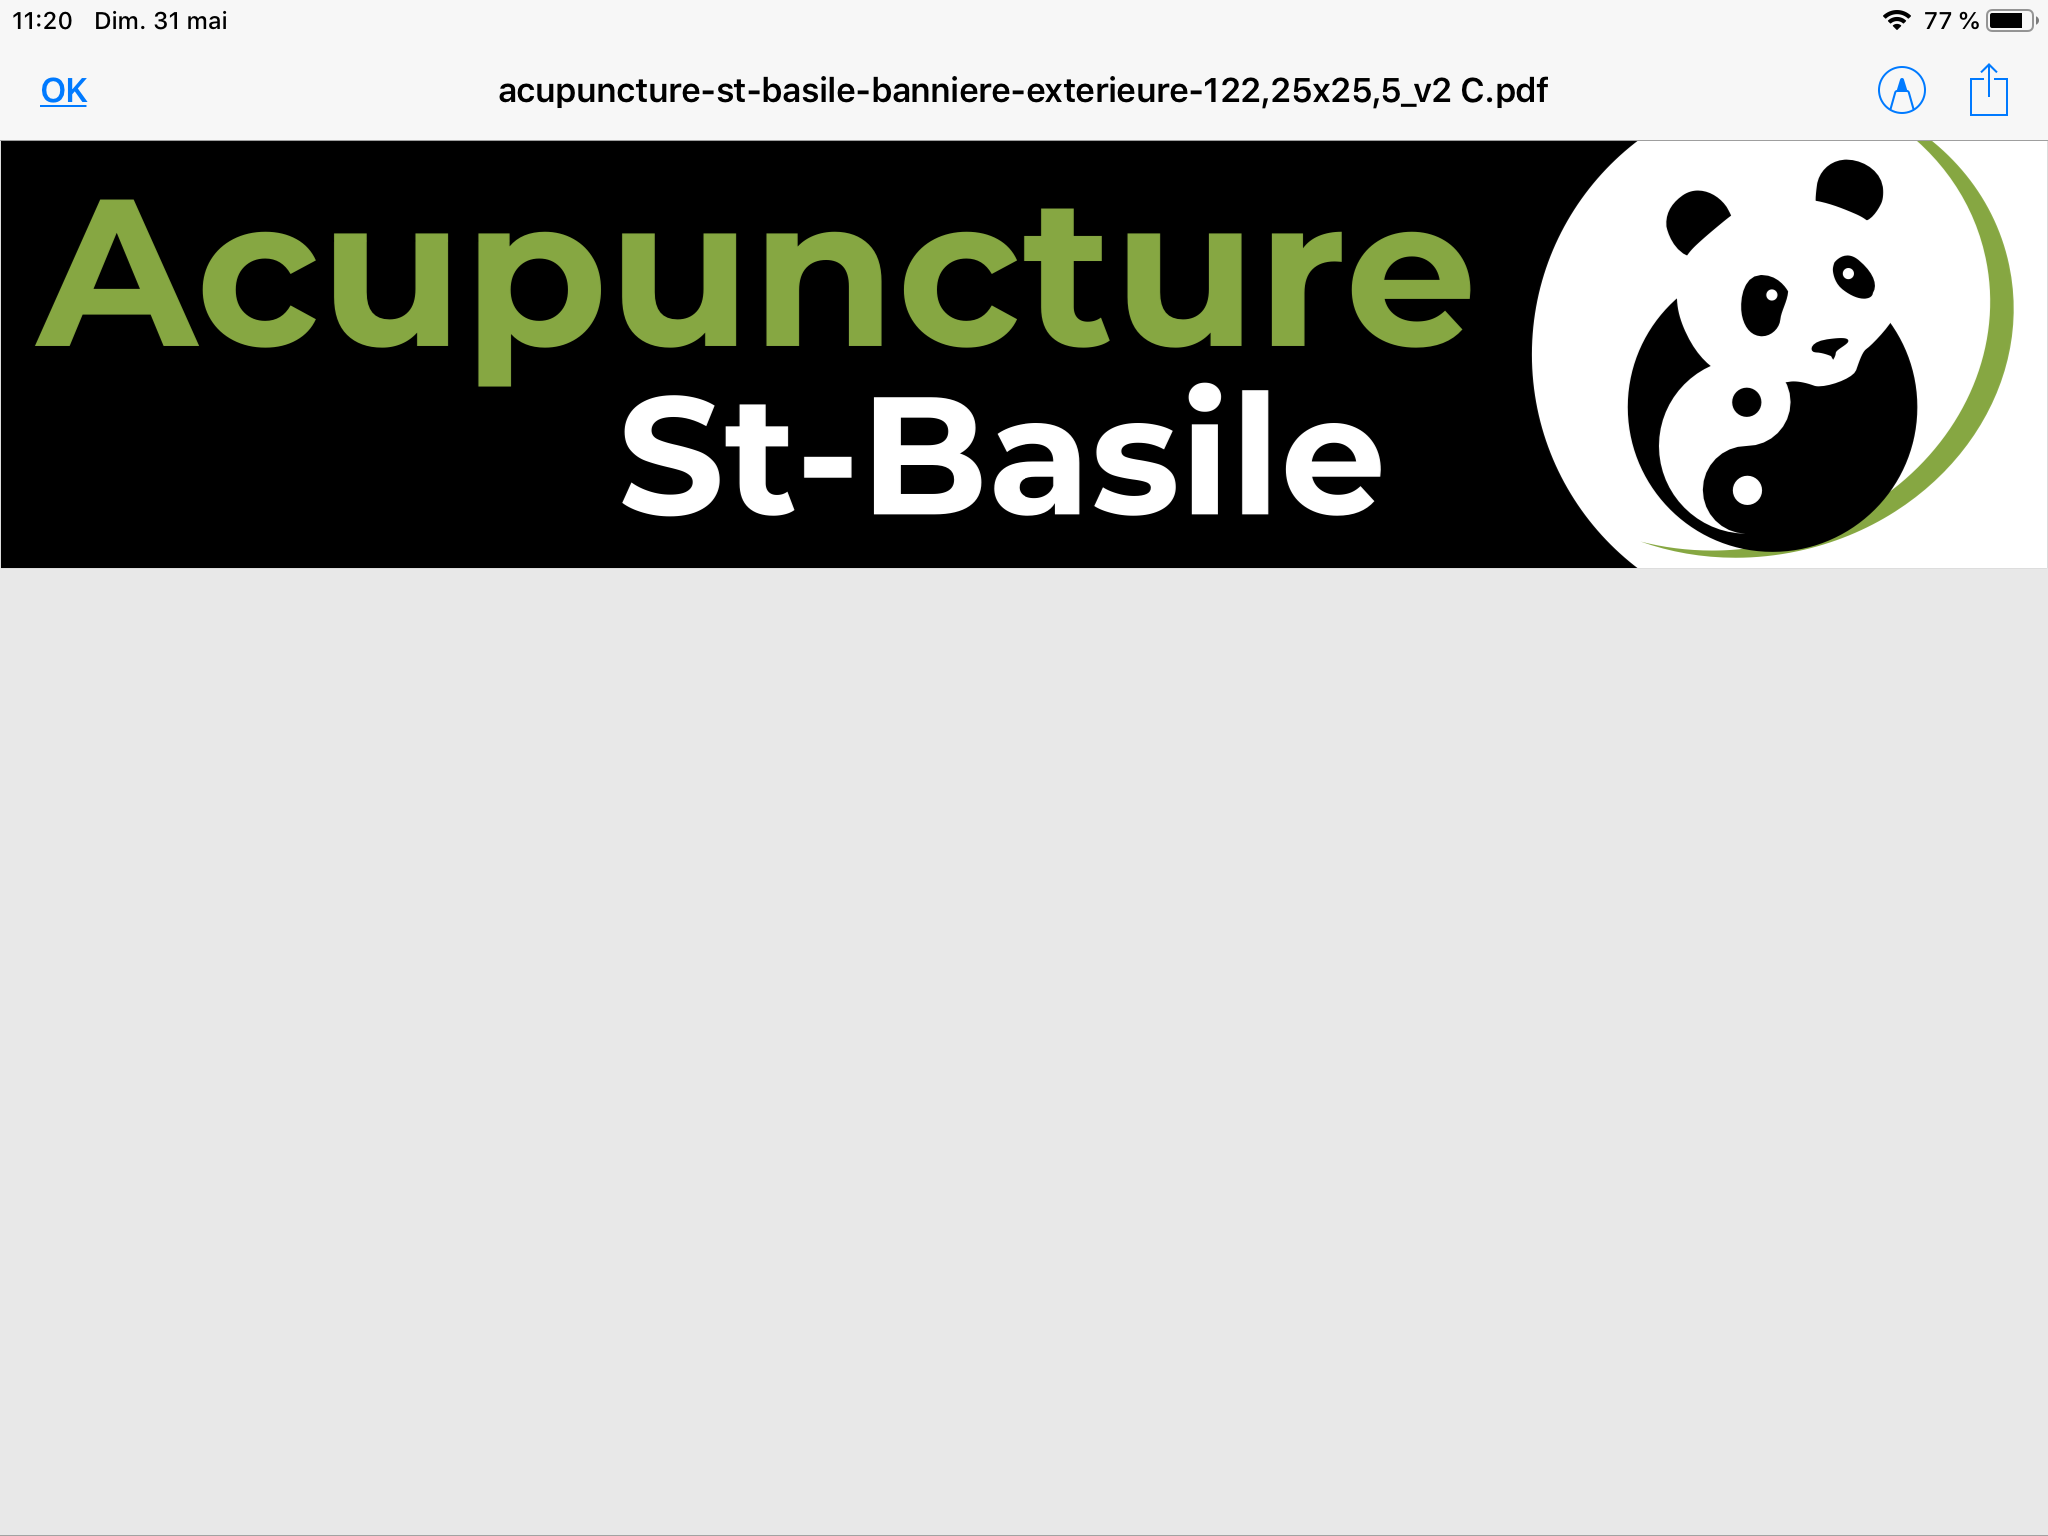 Acupuncture St-Basile